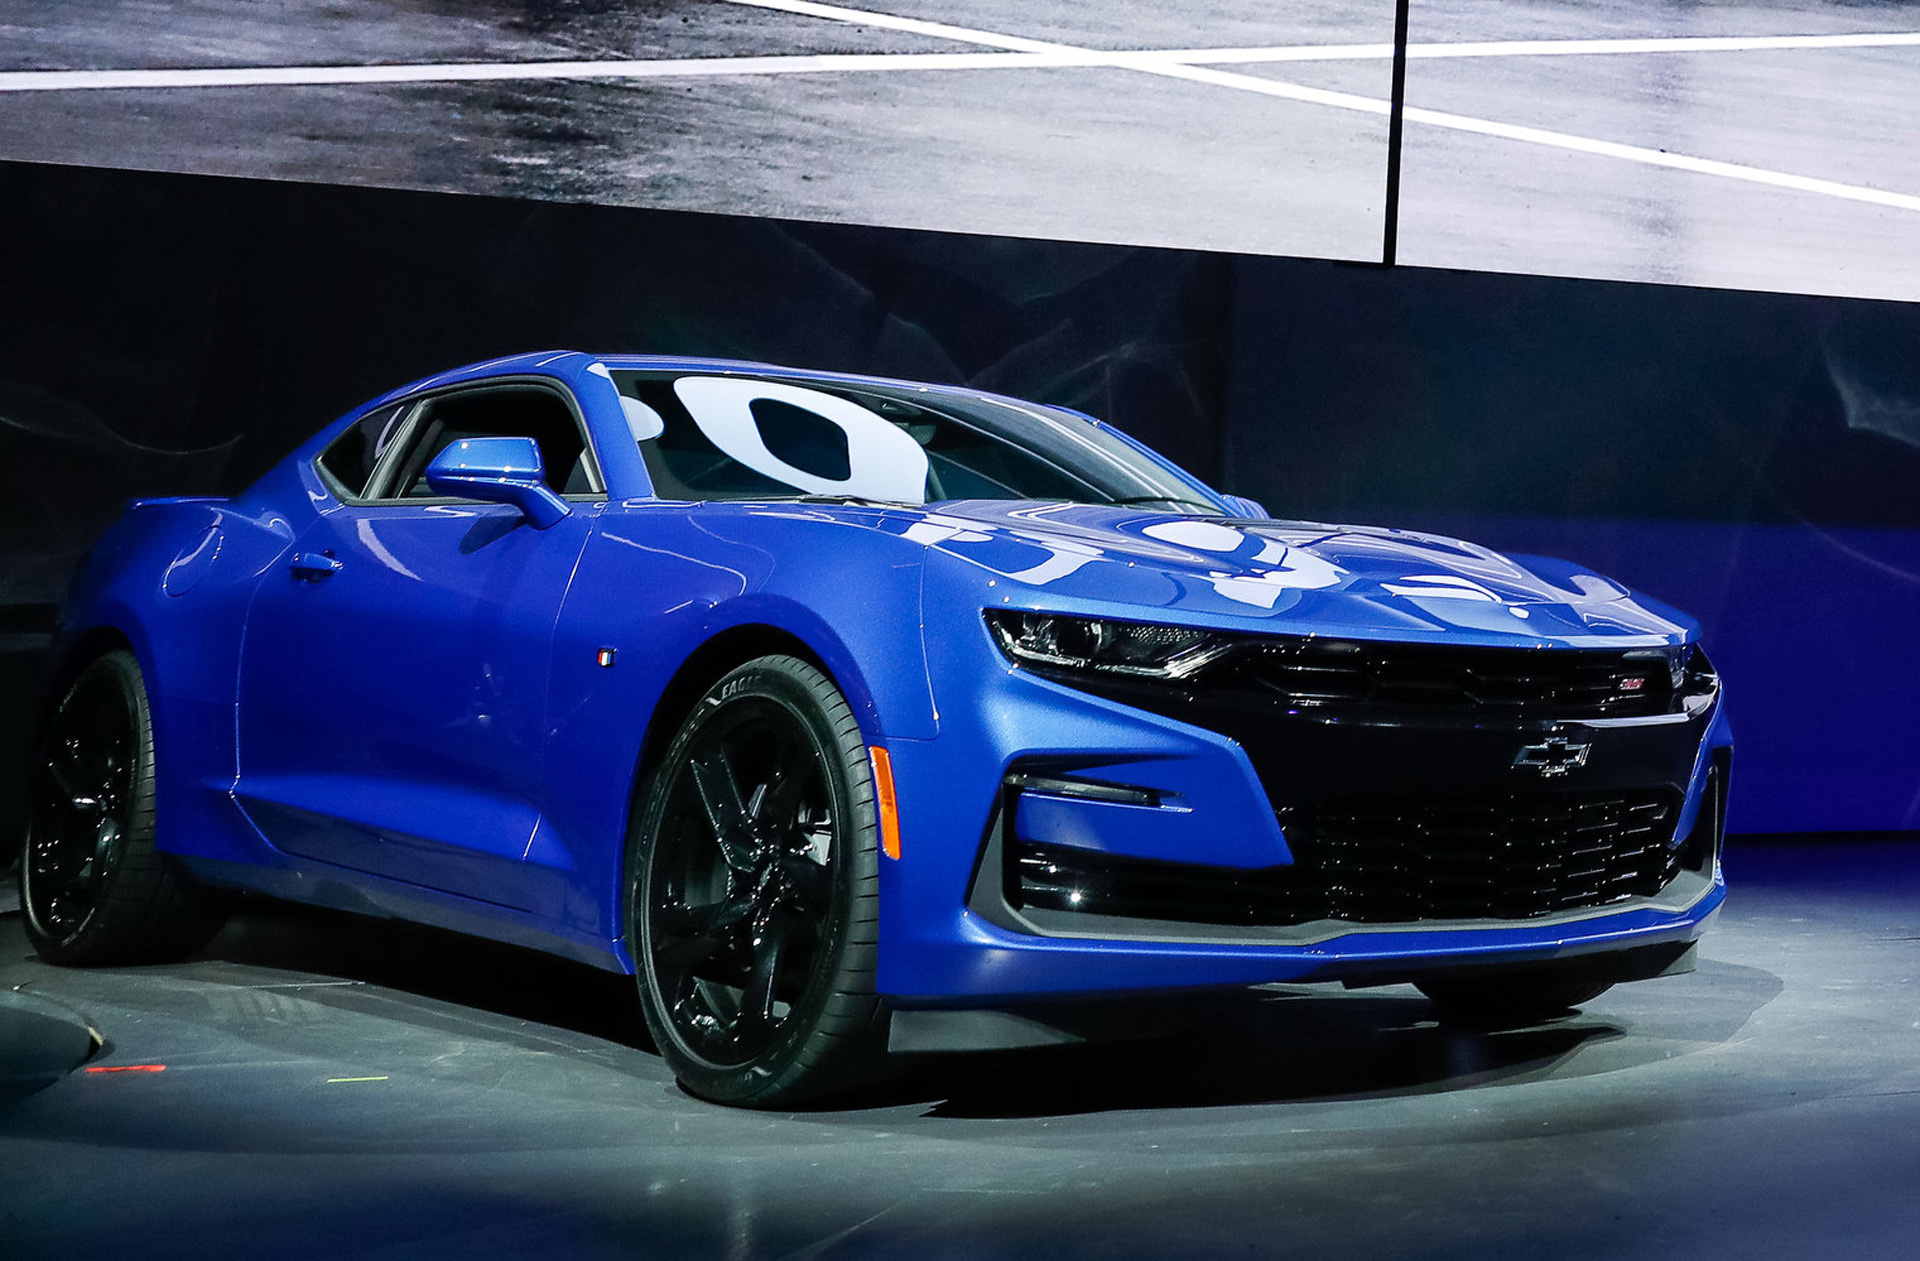 2019 Chevrolet Camaro (Chevy) Review, Ratings, Specs ...